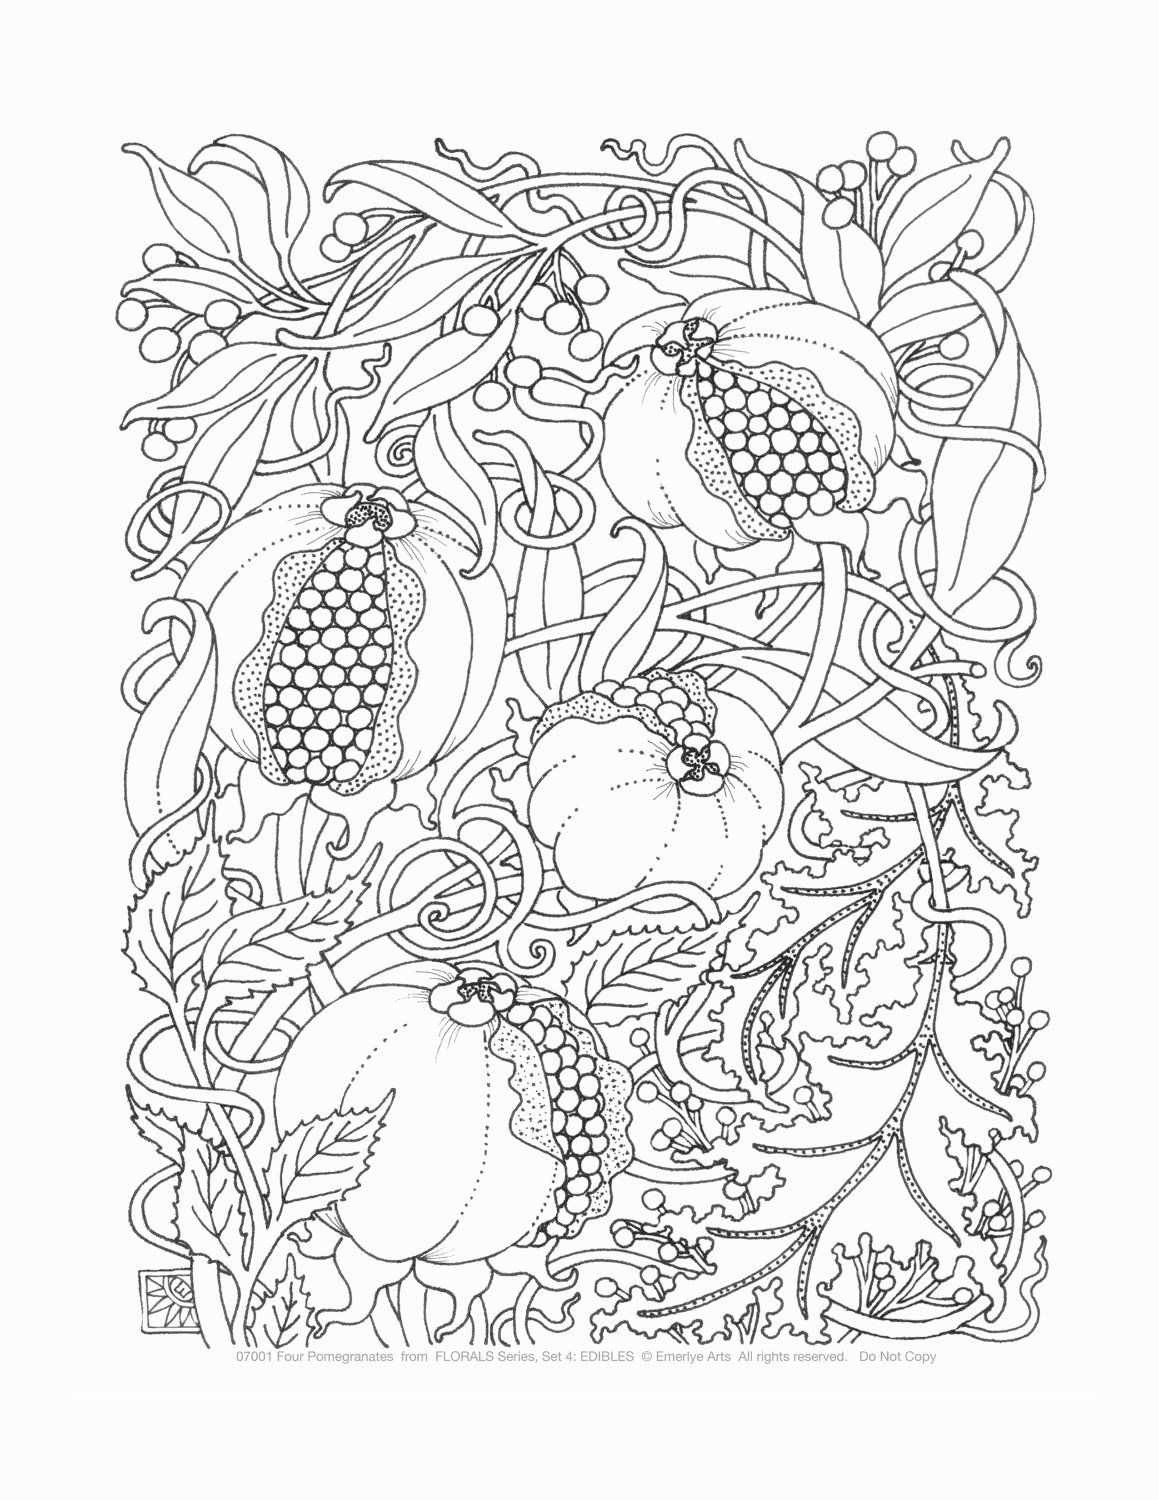 Free Coloring Page Adults Very Intricate Animal Coloring Pages Coloring Books Coloring Book Set